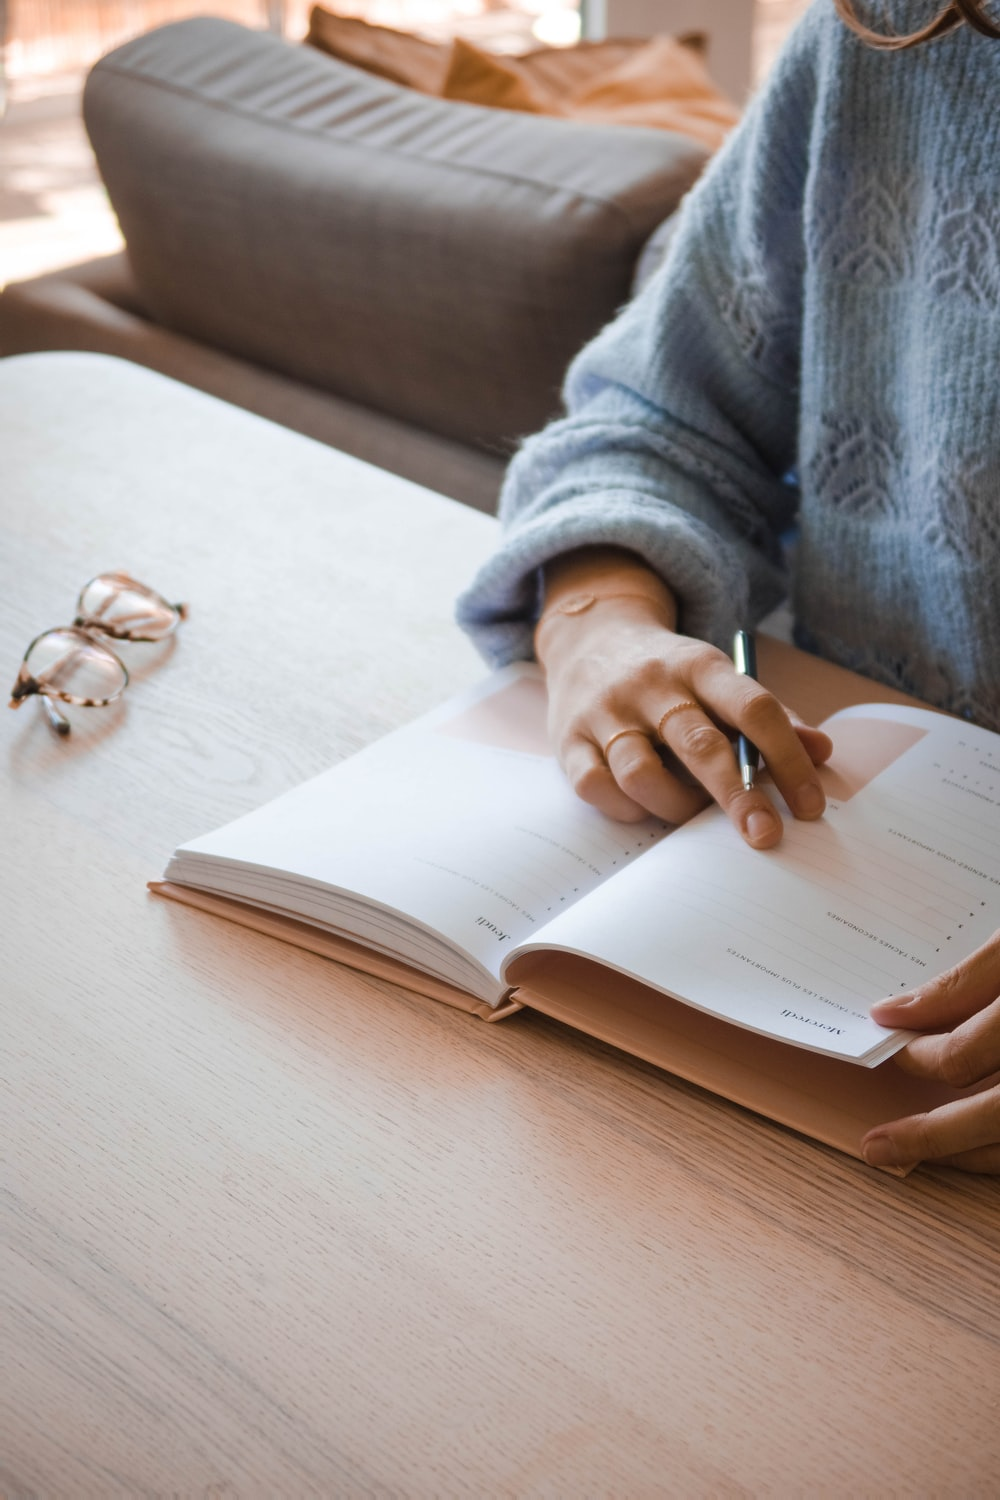 person in gray sweater holding white book